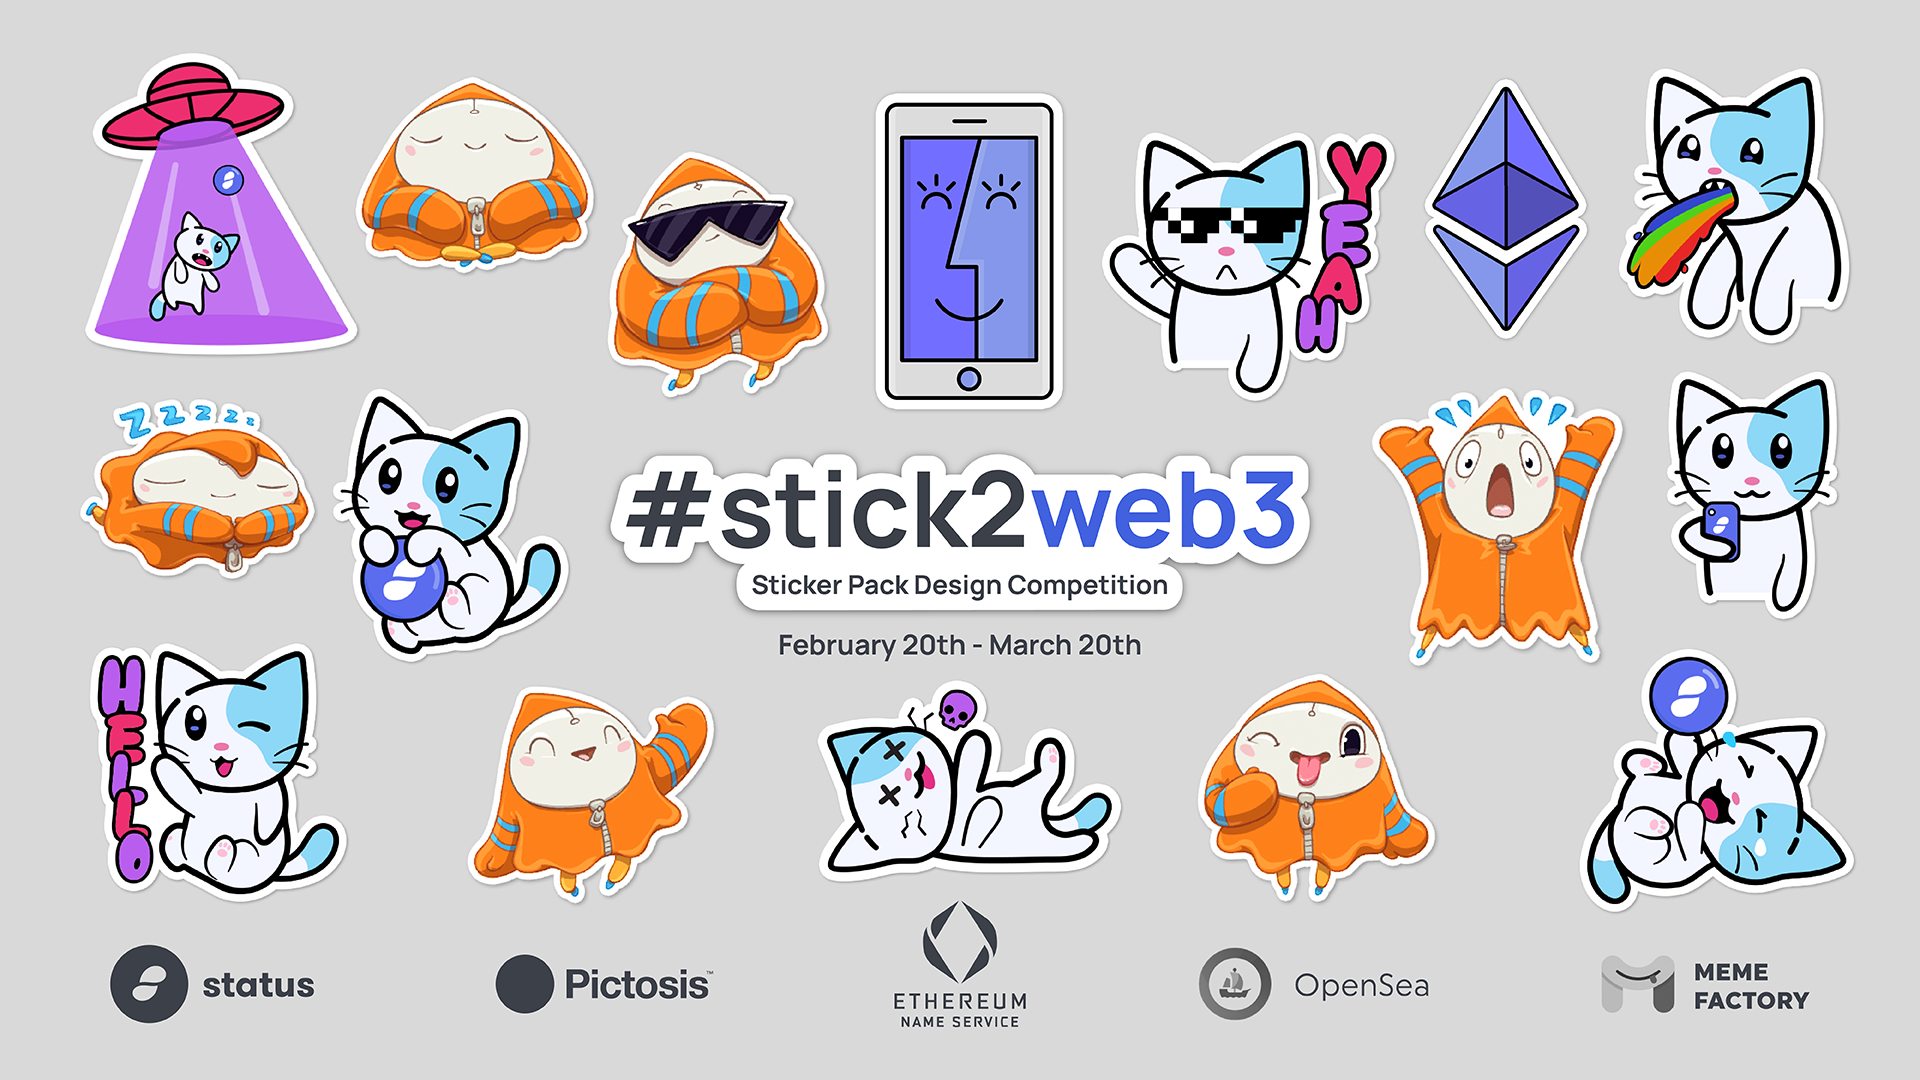 #stick2web3 Sticker Design Competition - Top 10 and Voting Begins